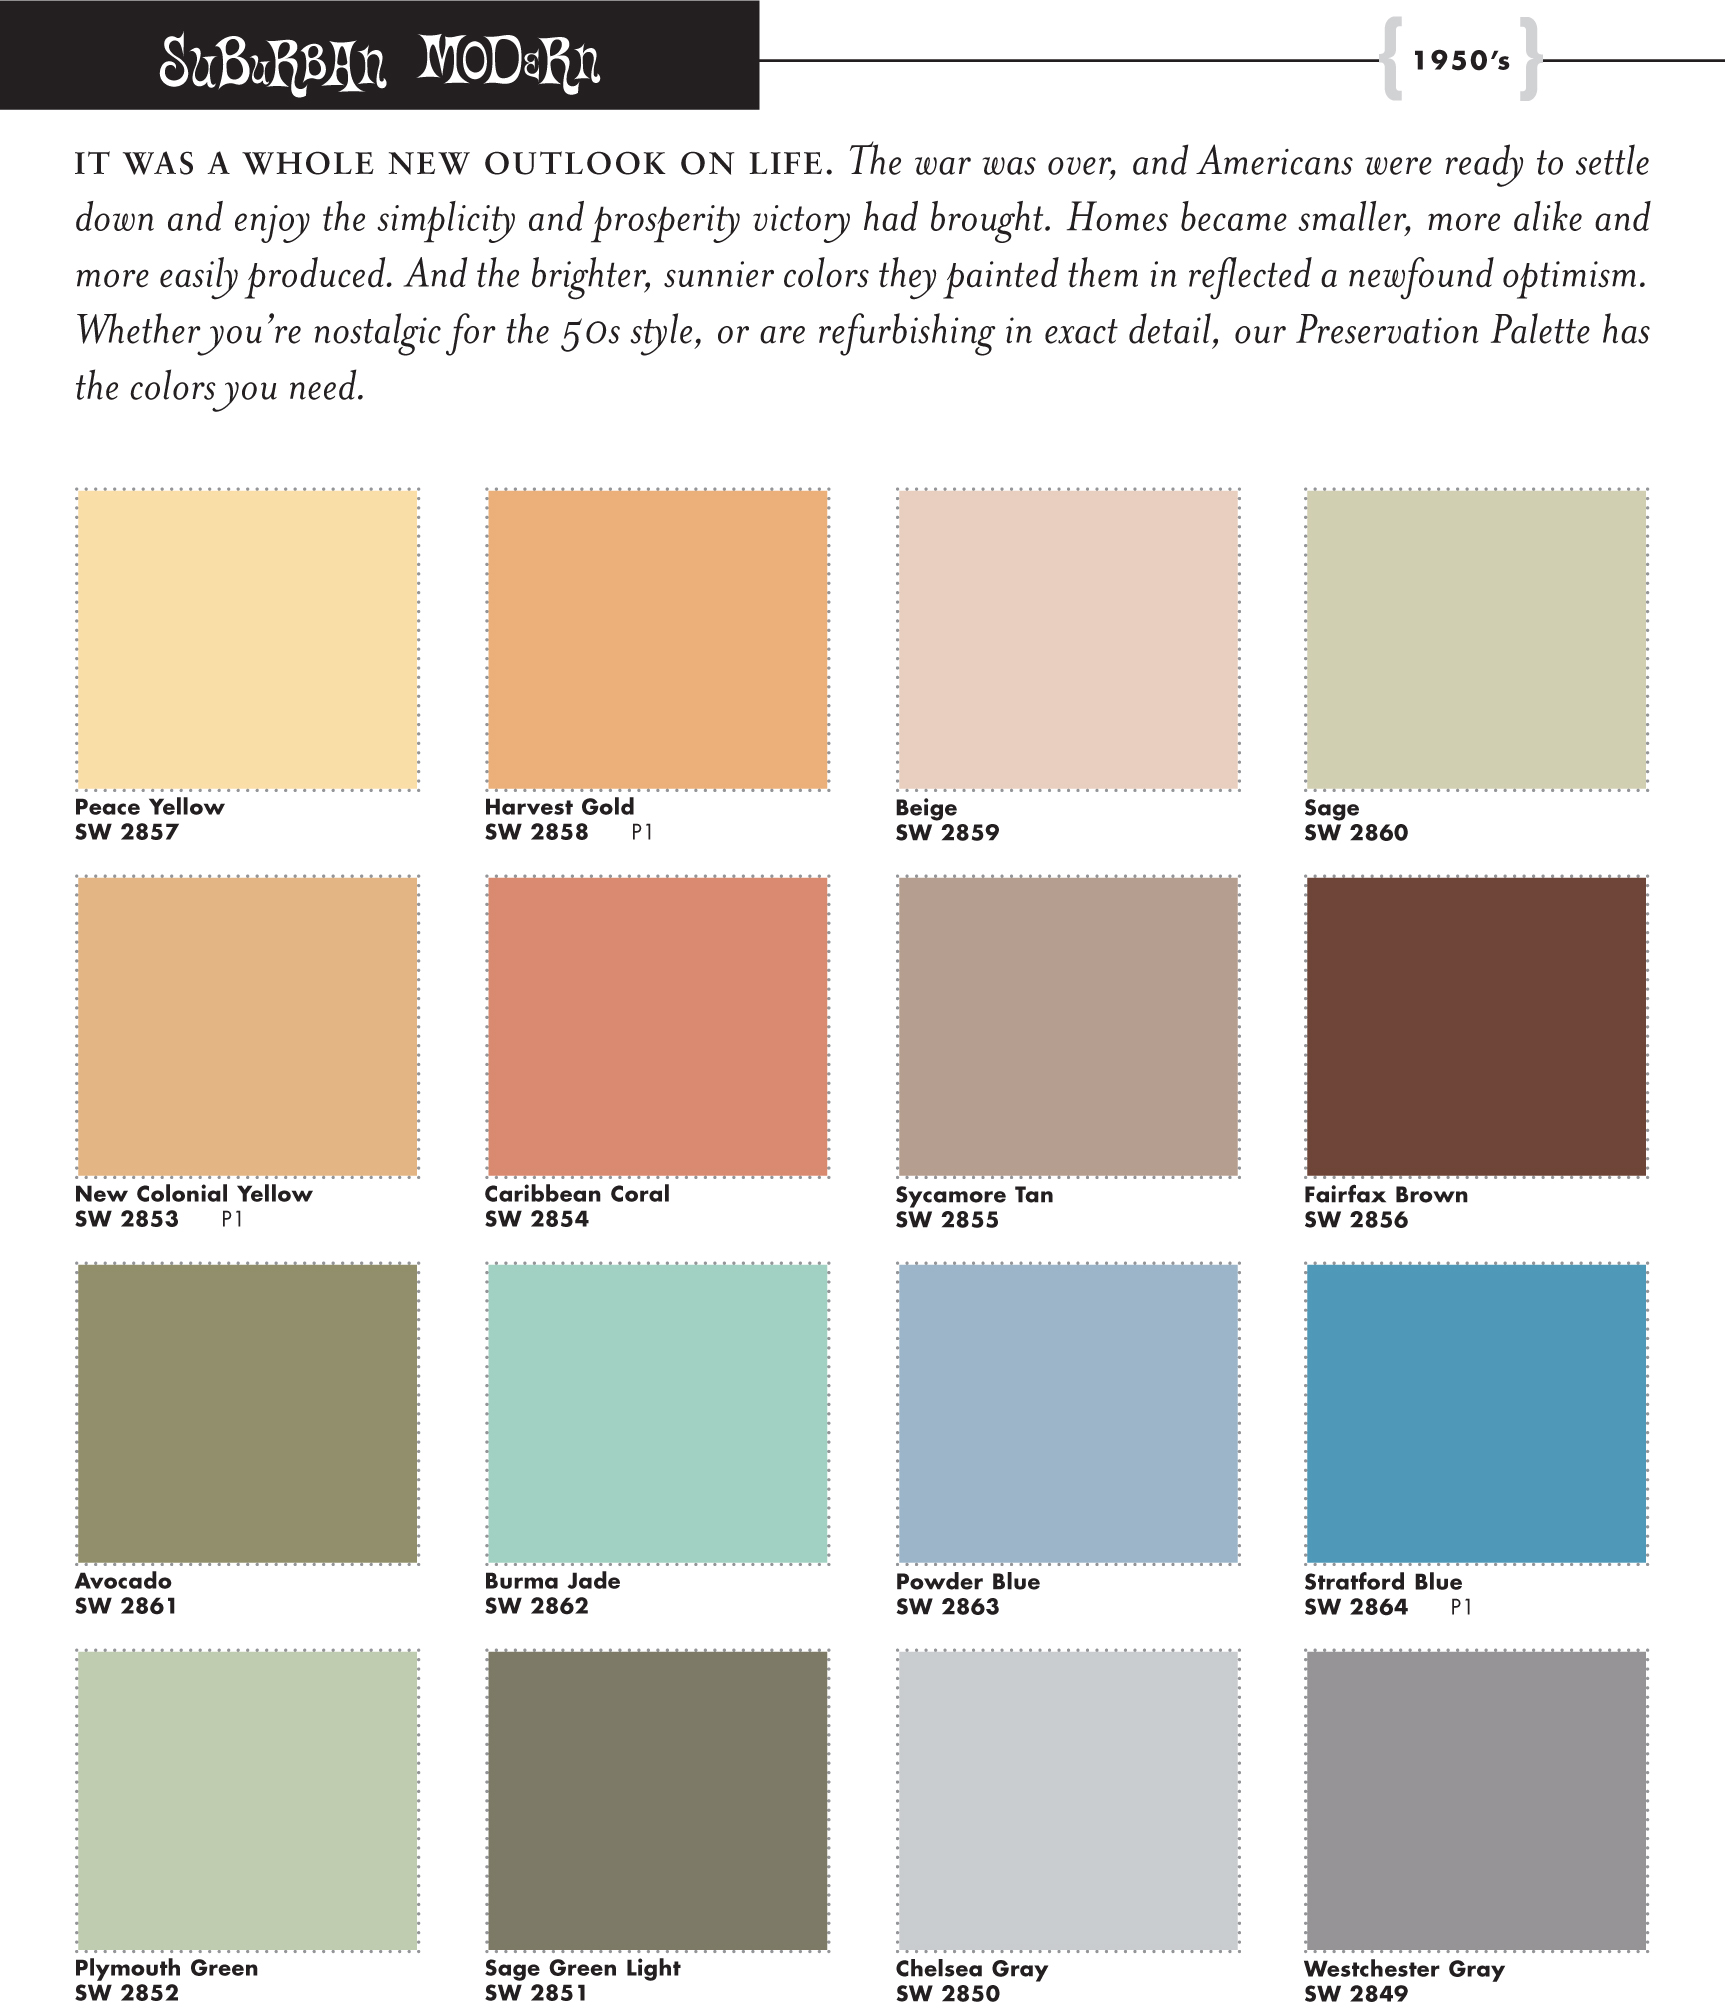 Mid century modern colors revisited Interior design color palettes